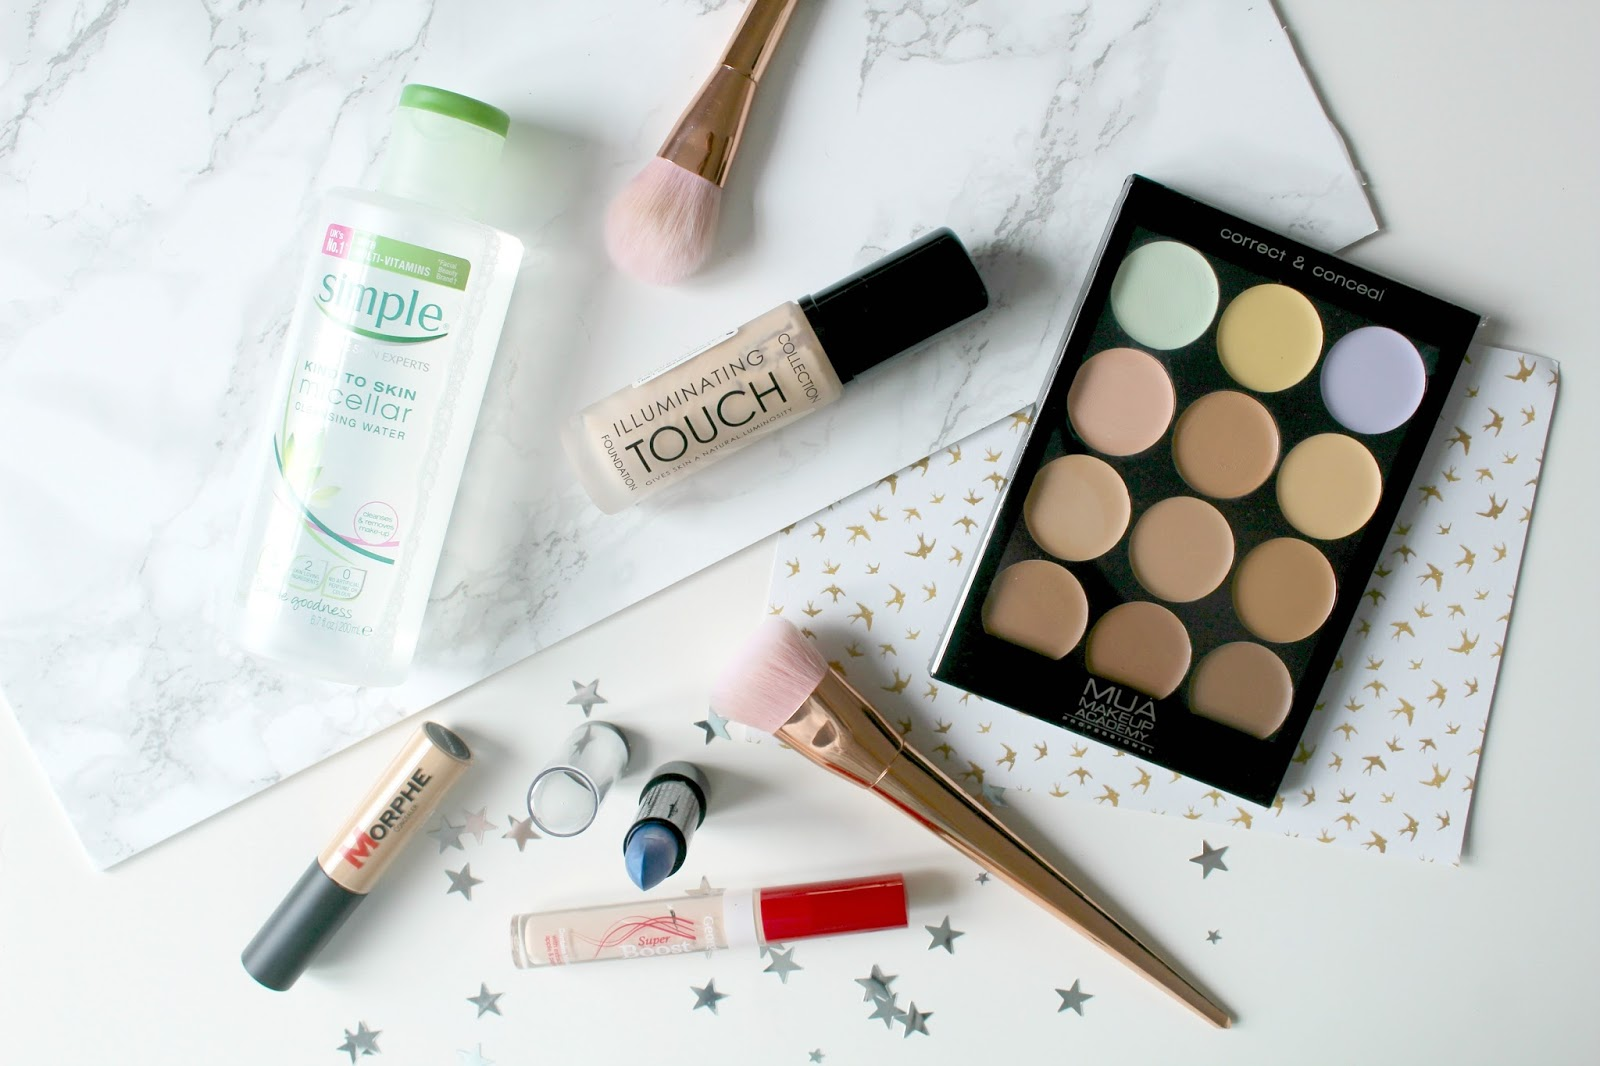 disappointing products round-up, disappointing products 2017, simple micellar water, mua make-up academy conceal and correct palette, george asda super boost concealer, morphe concealer, stargazer lipstick 105, collection illuminating touch foundation, review